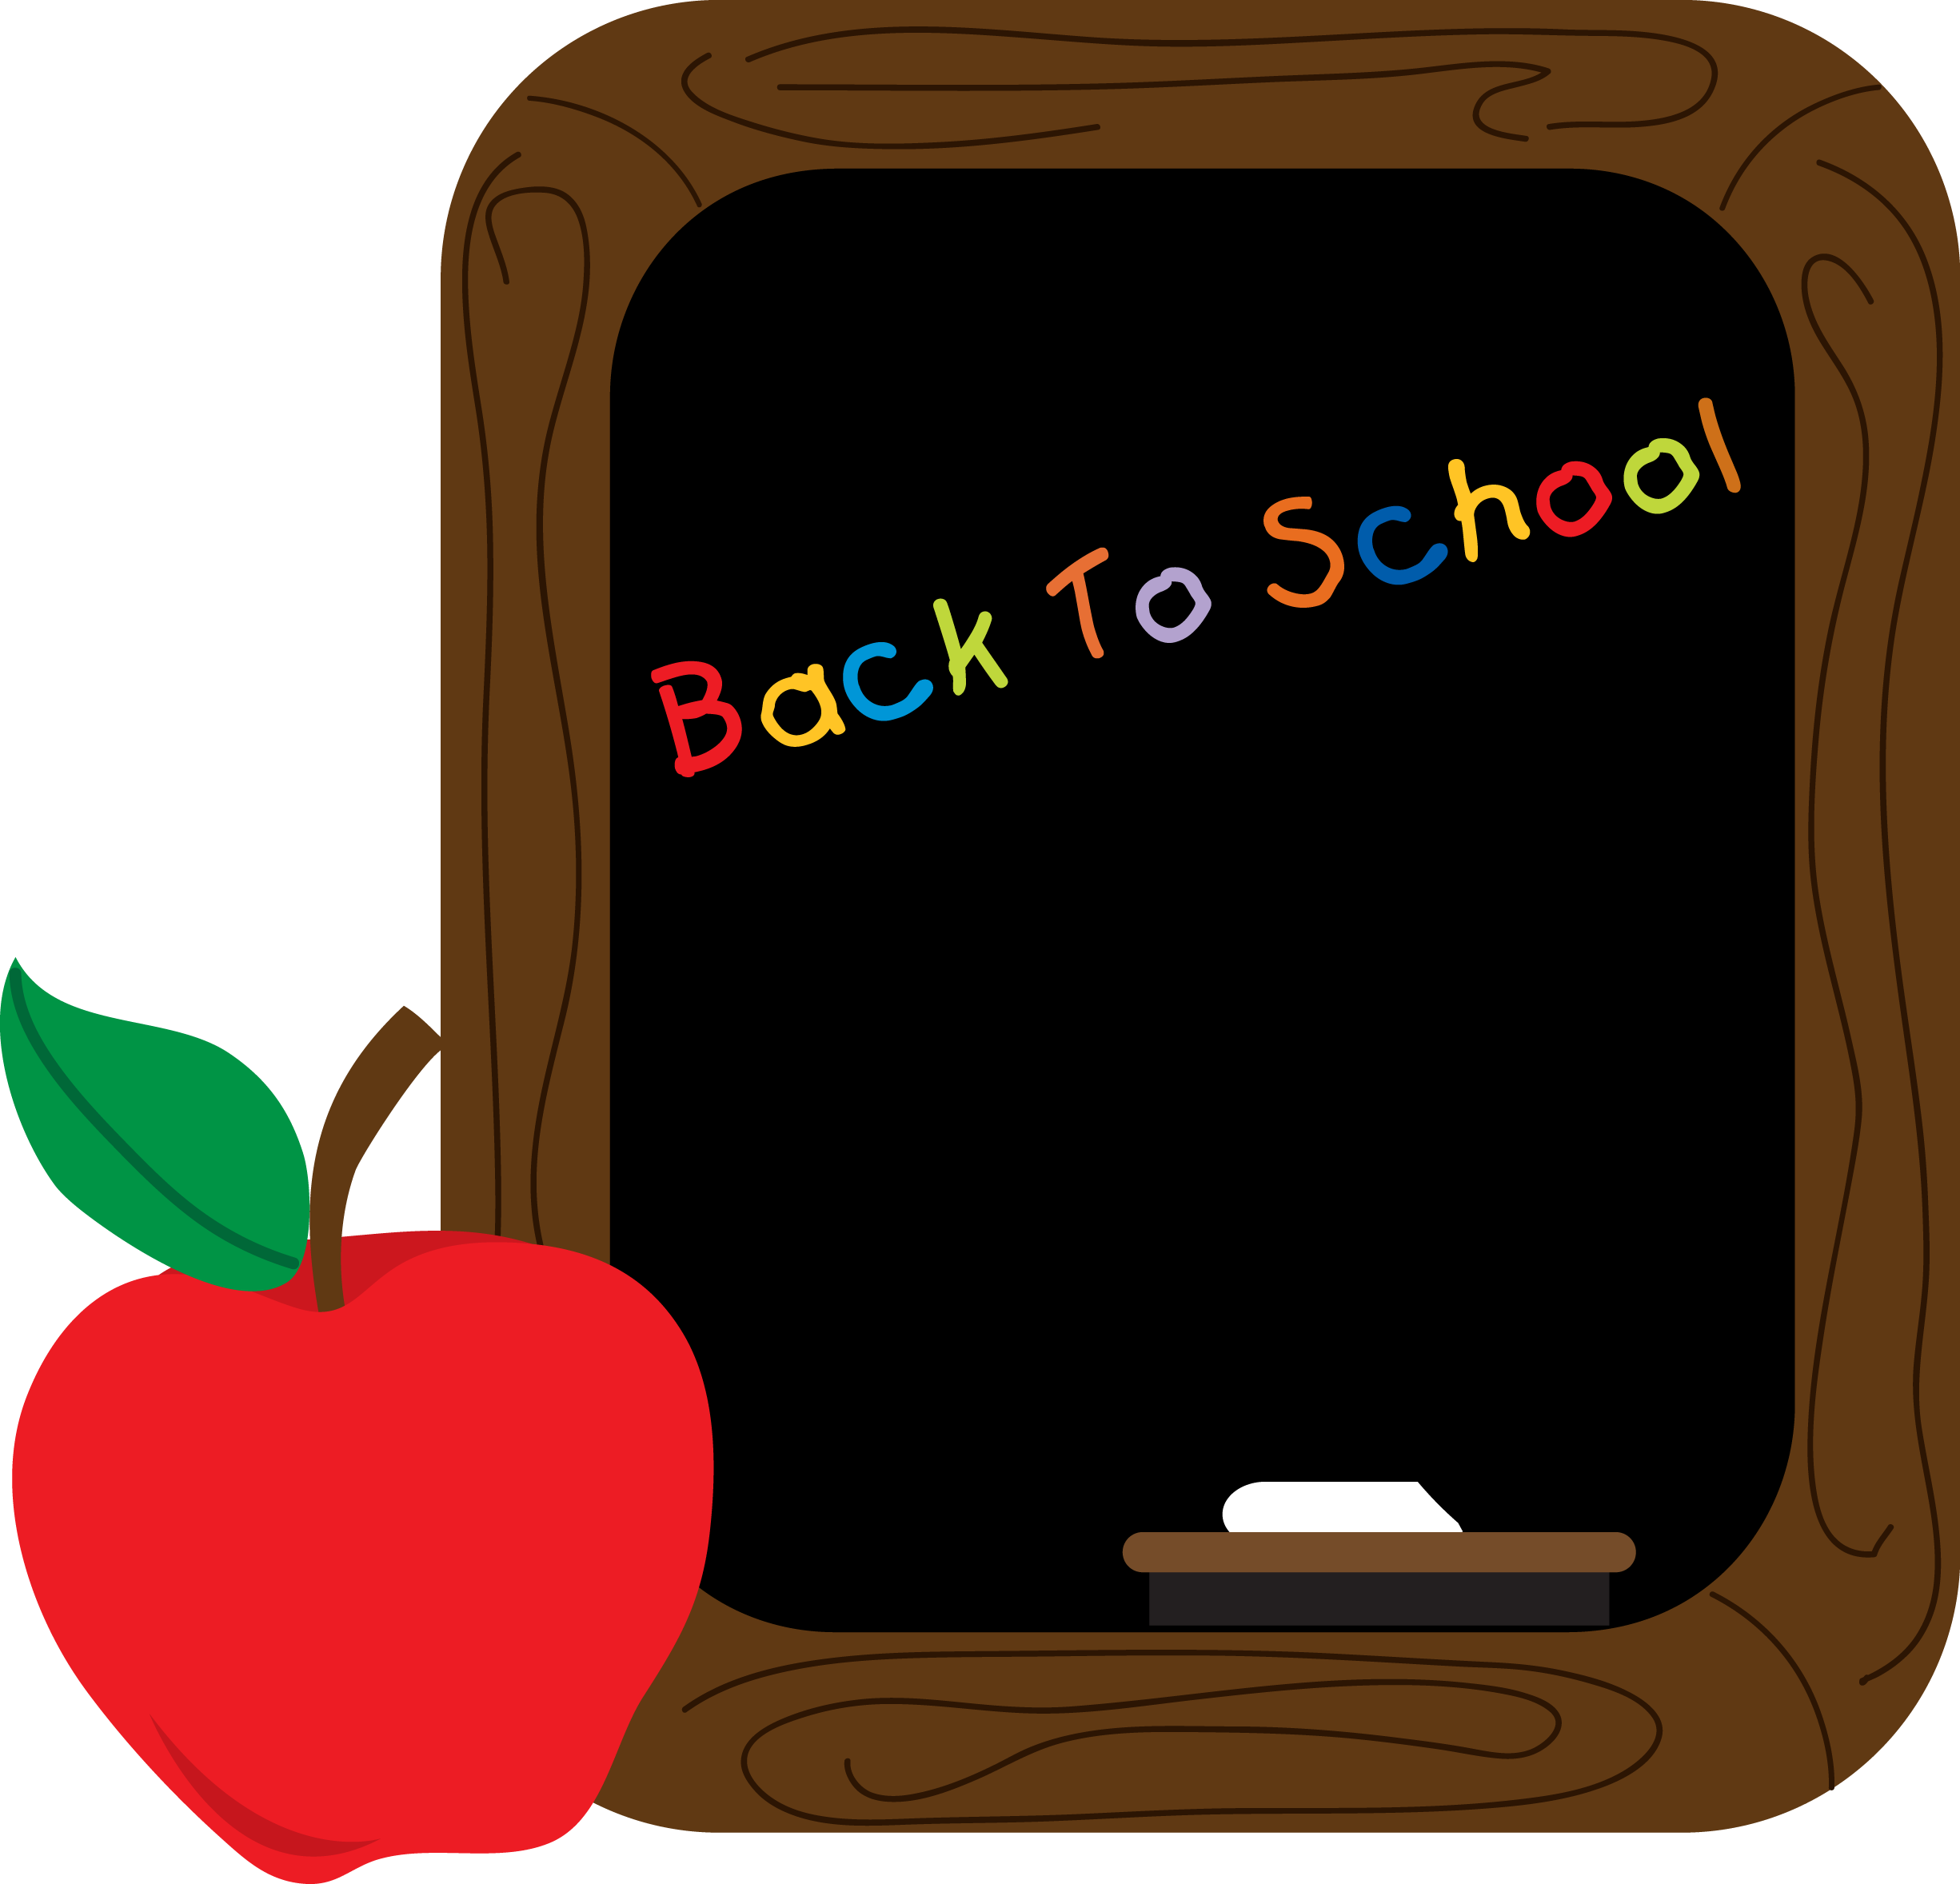 Vector chalkboard back to school. Apple clipart pencil and